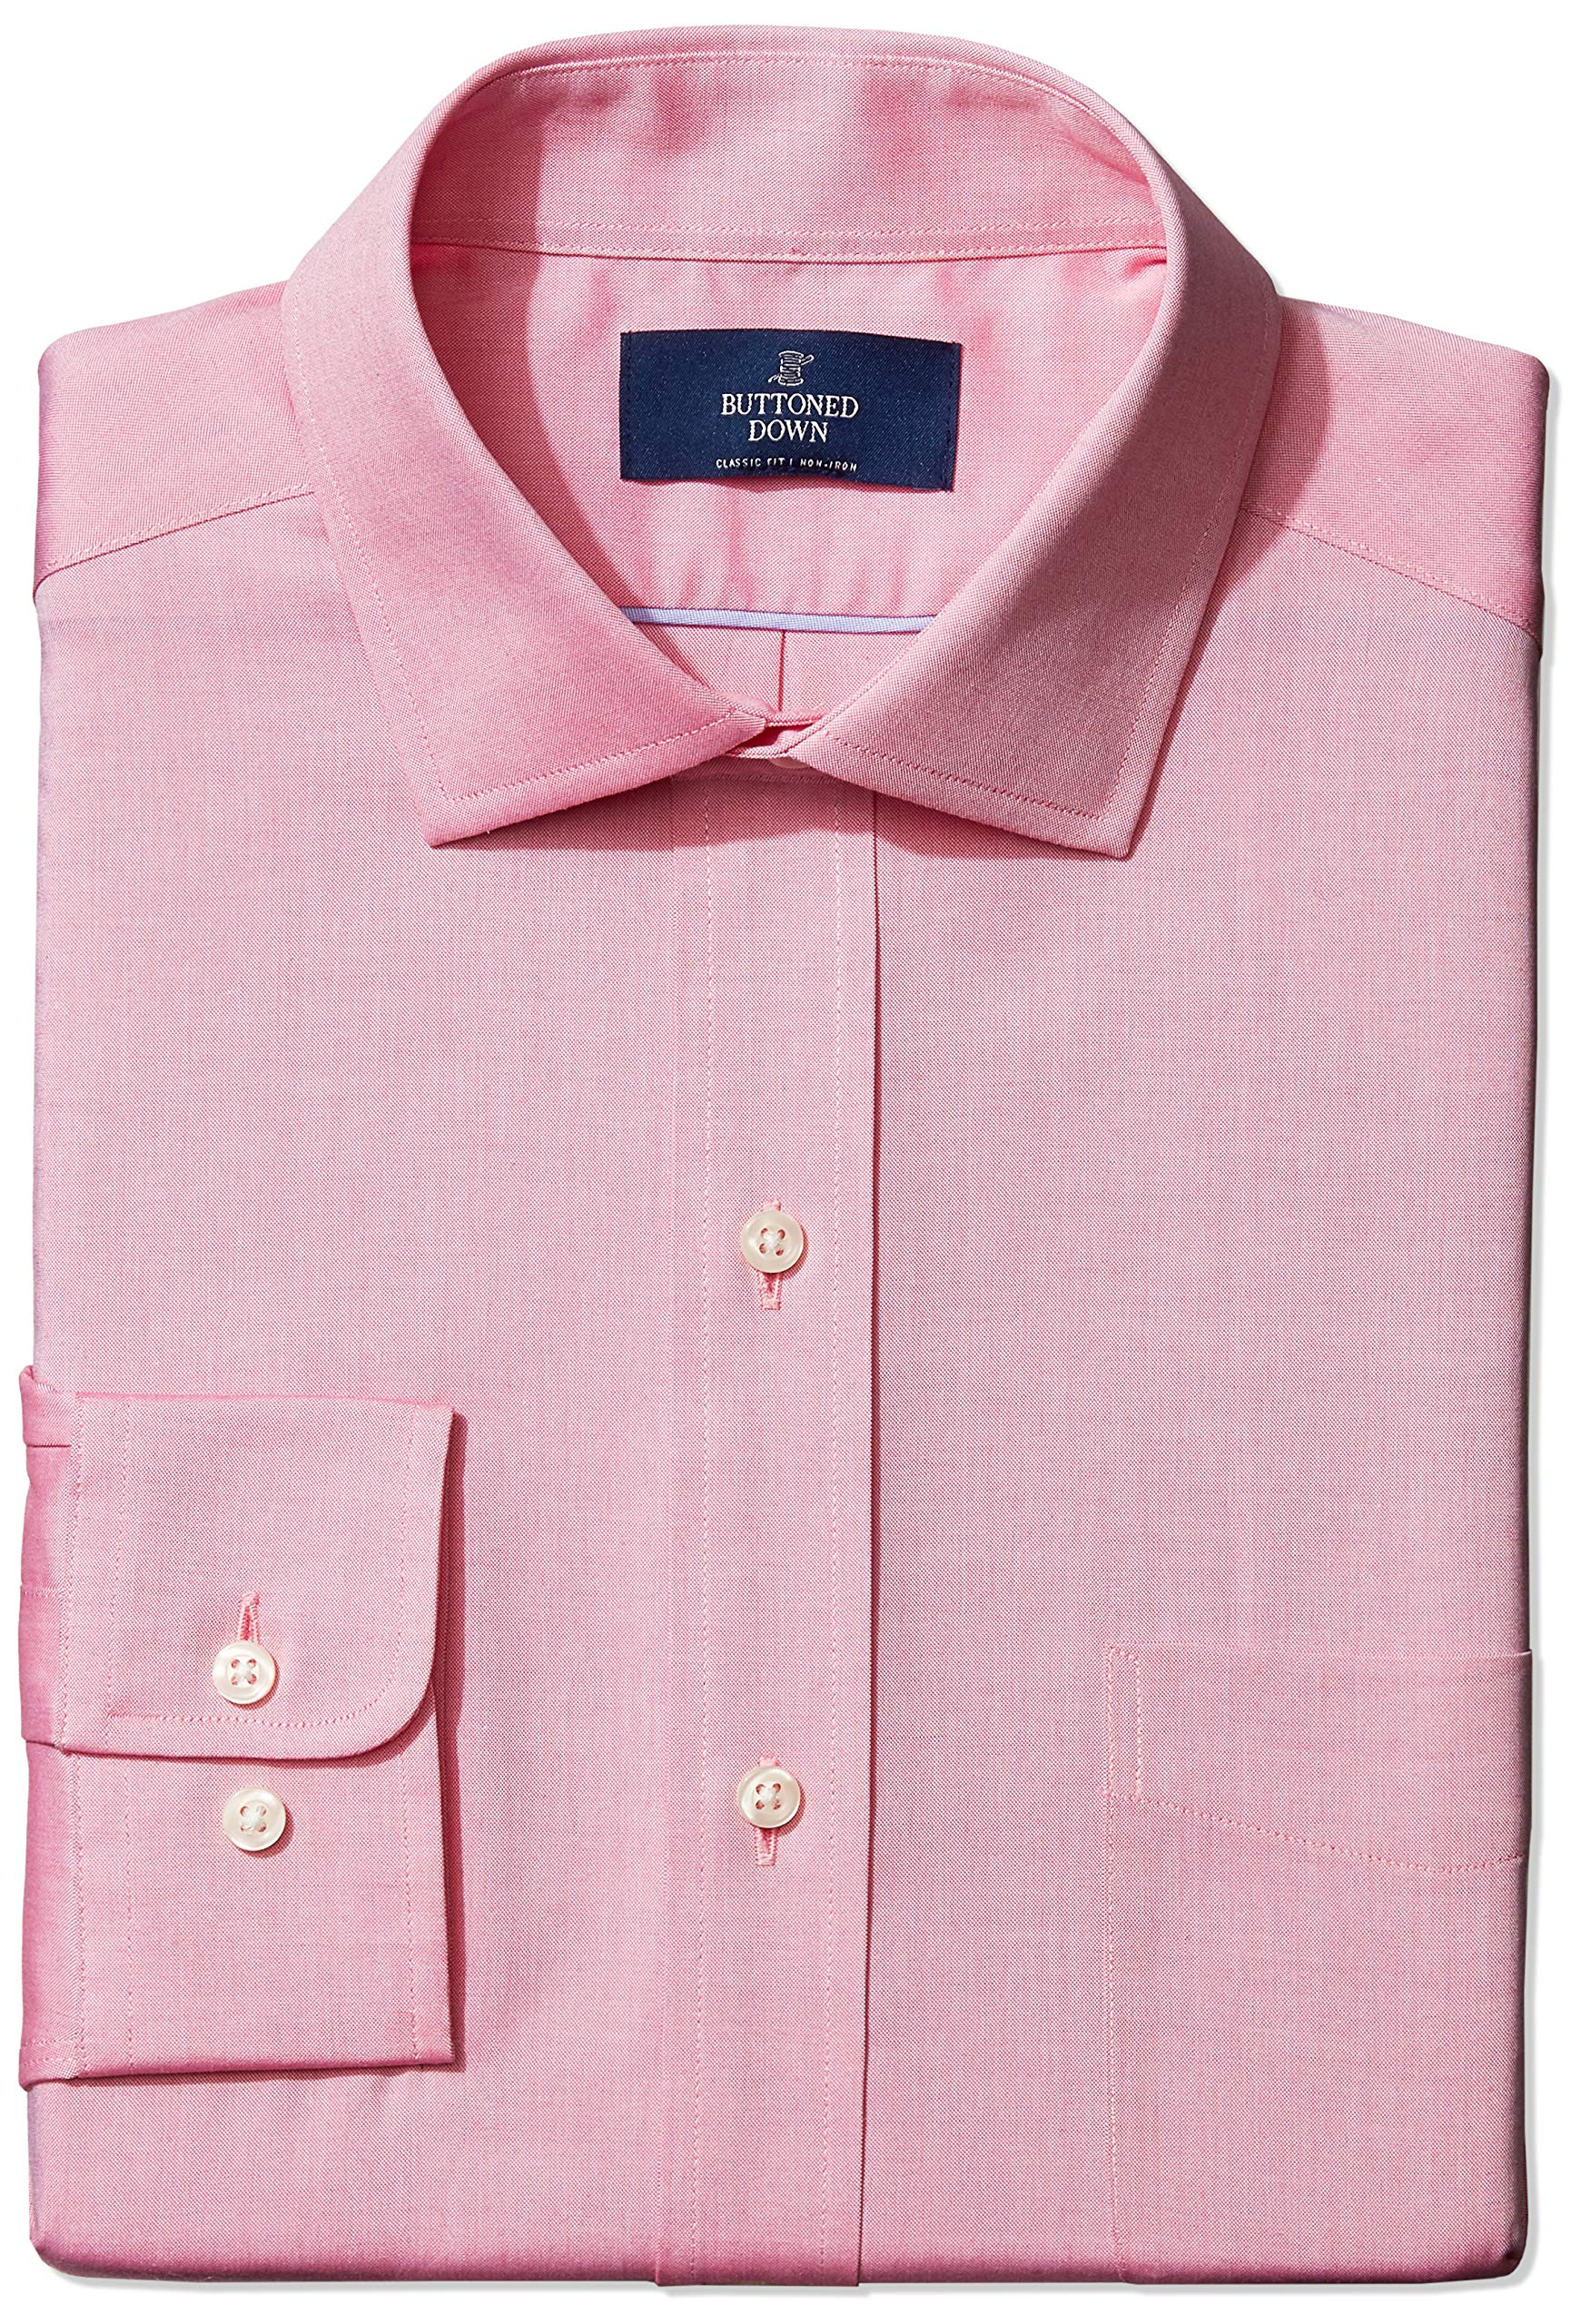 Amazon Brand - Buttoned Down Men's Classic-Fit Spread Collar Solid Non-Iron Dress Shirt